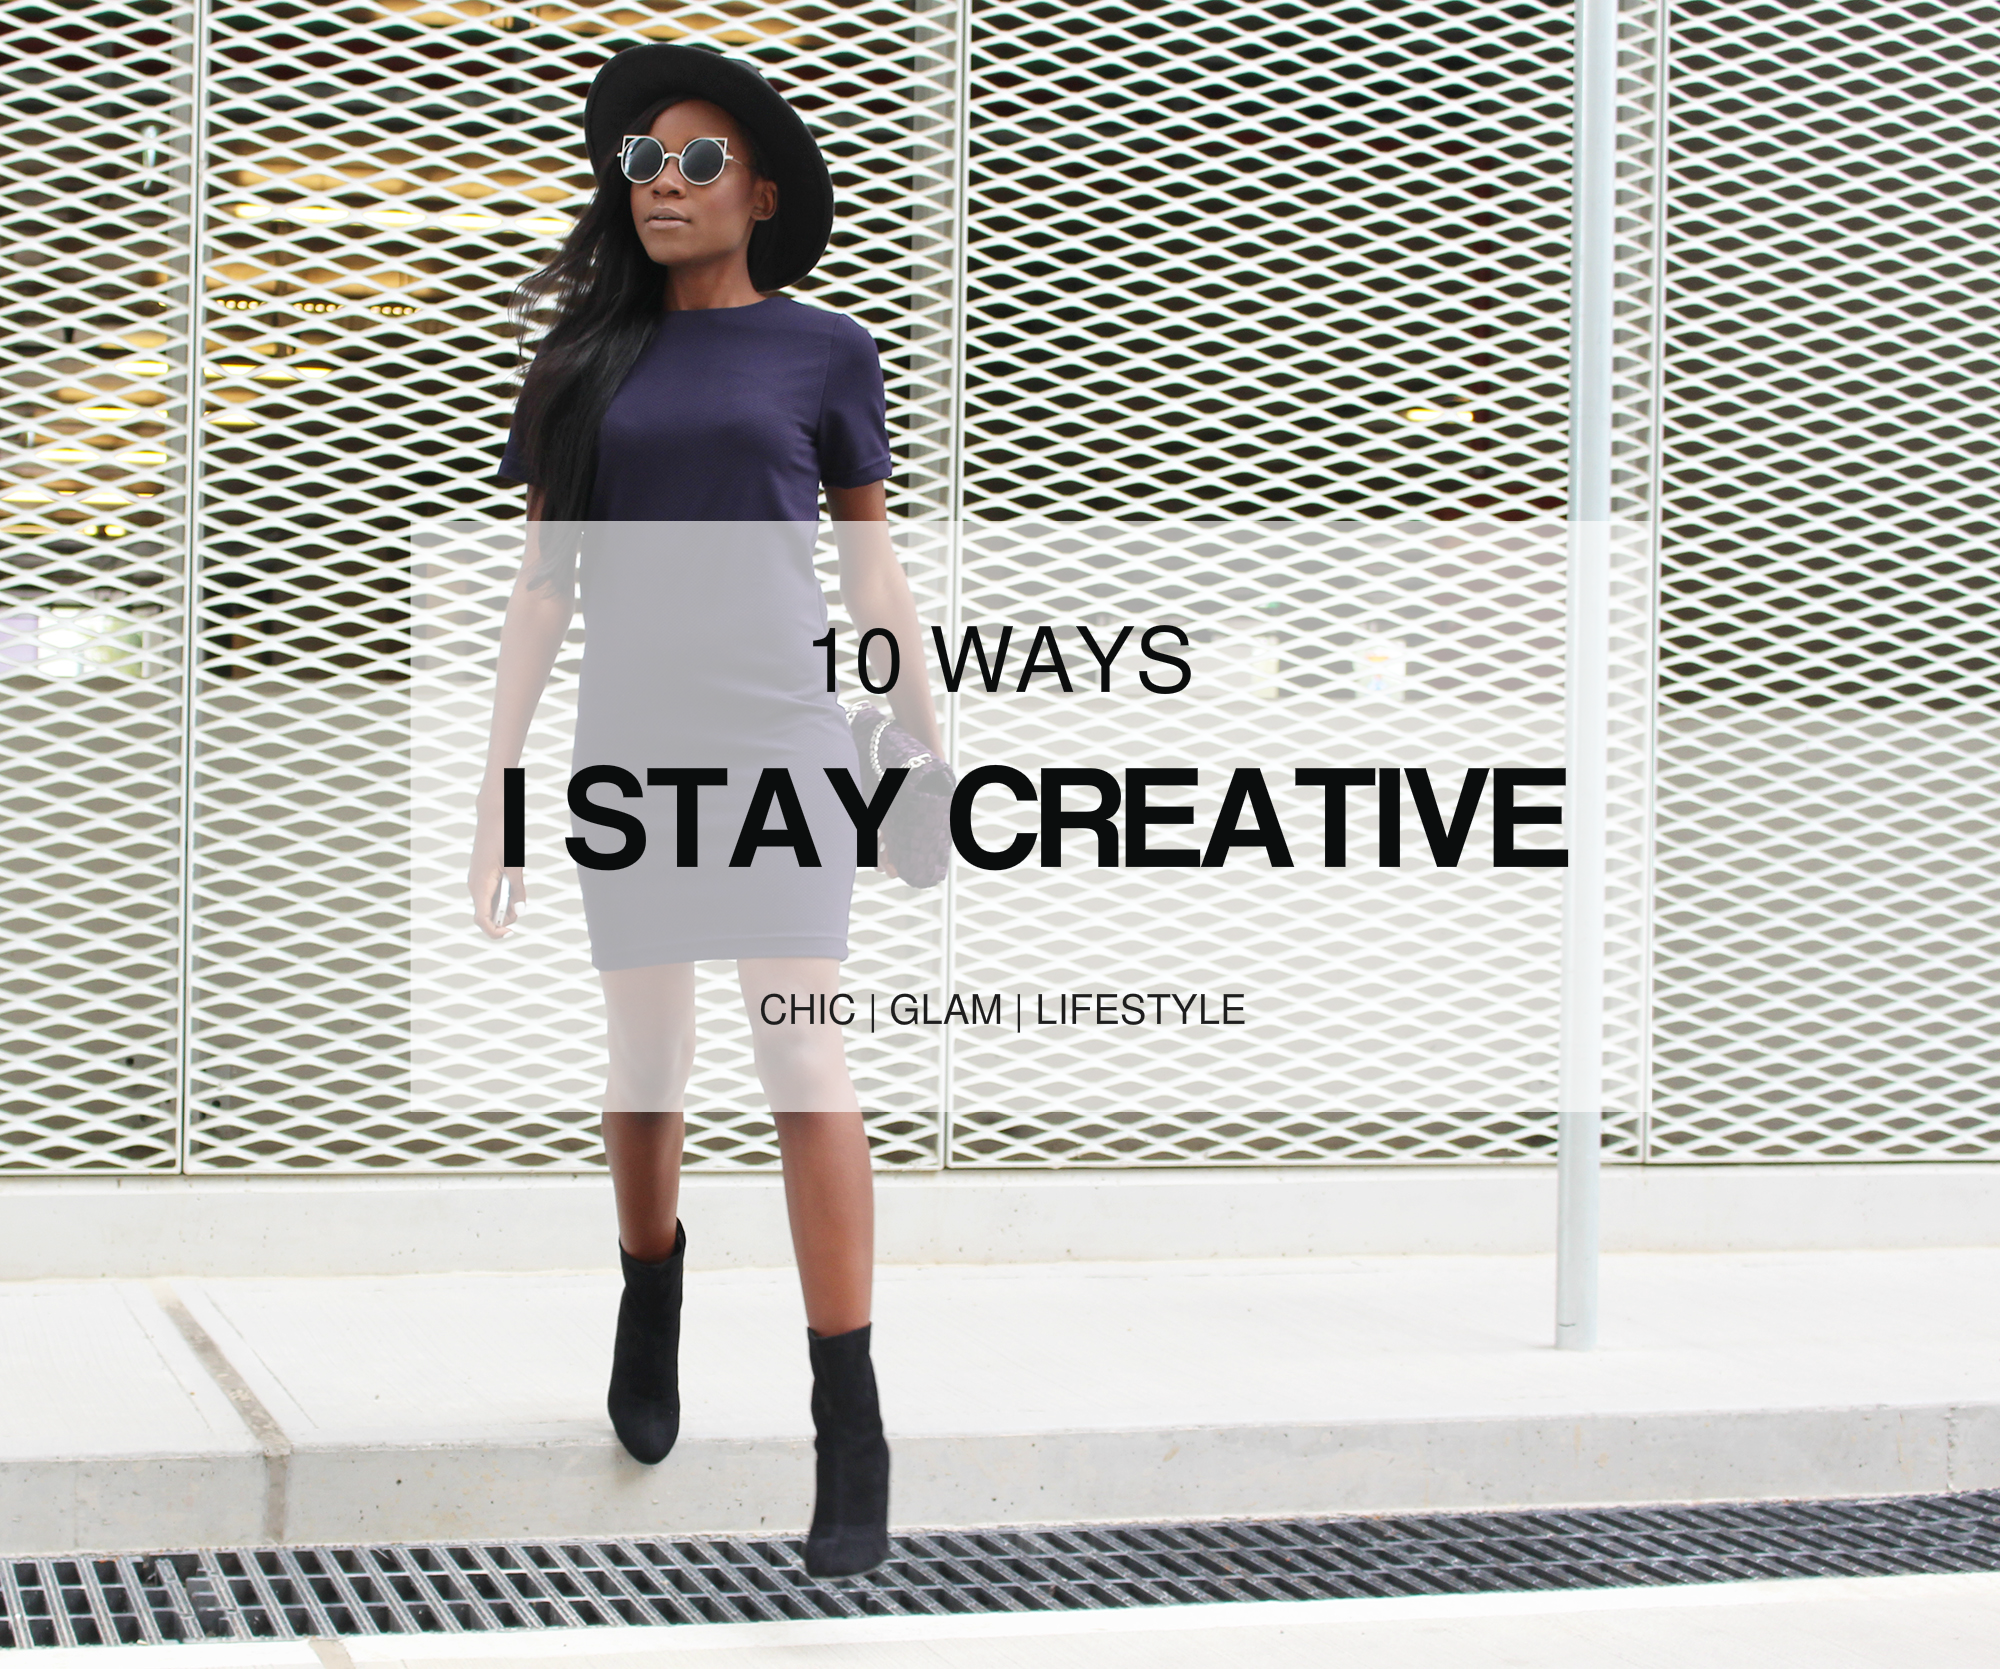 10-ways-to-stay-creative